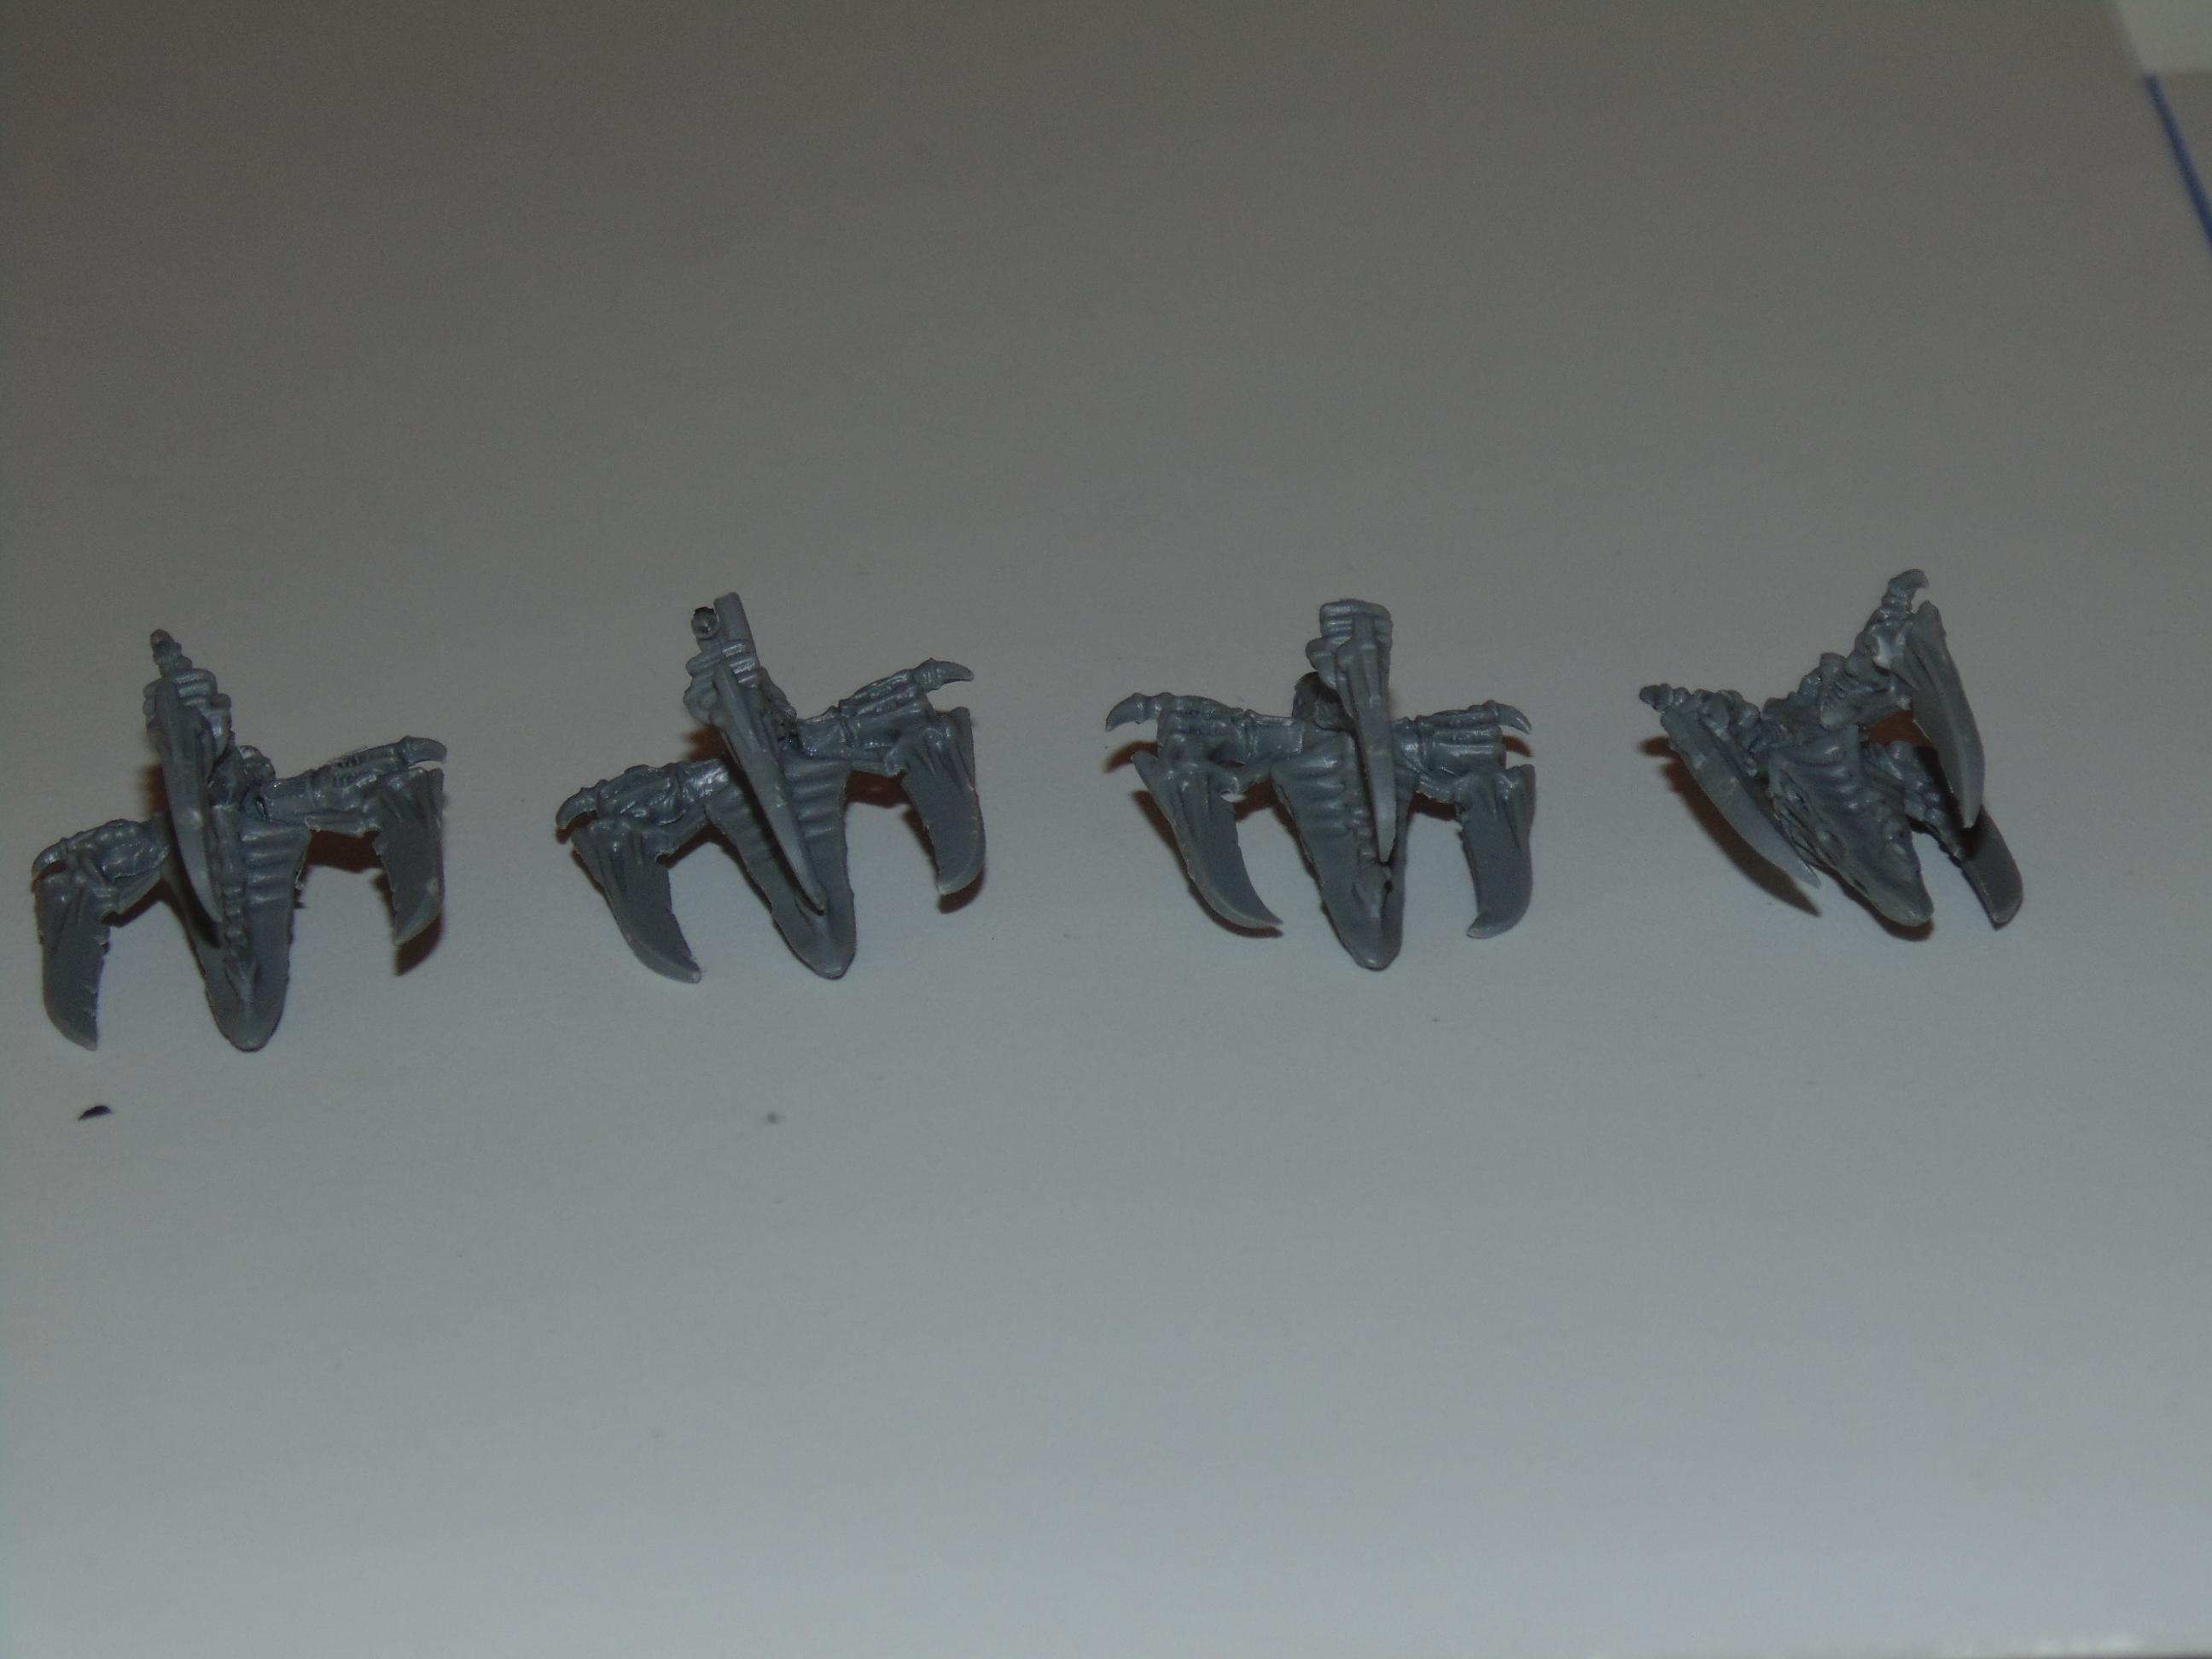 Battlefleet, Battleship, Conversion, Drone, Escort, Fleet, Gothic, Hive, Imperial, Kraken, Mothership, Scratch, Scratch Build, Ship, Ships, Tyranids, Vanguard